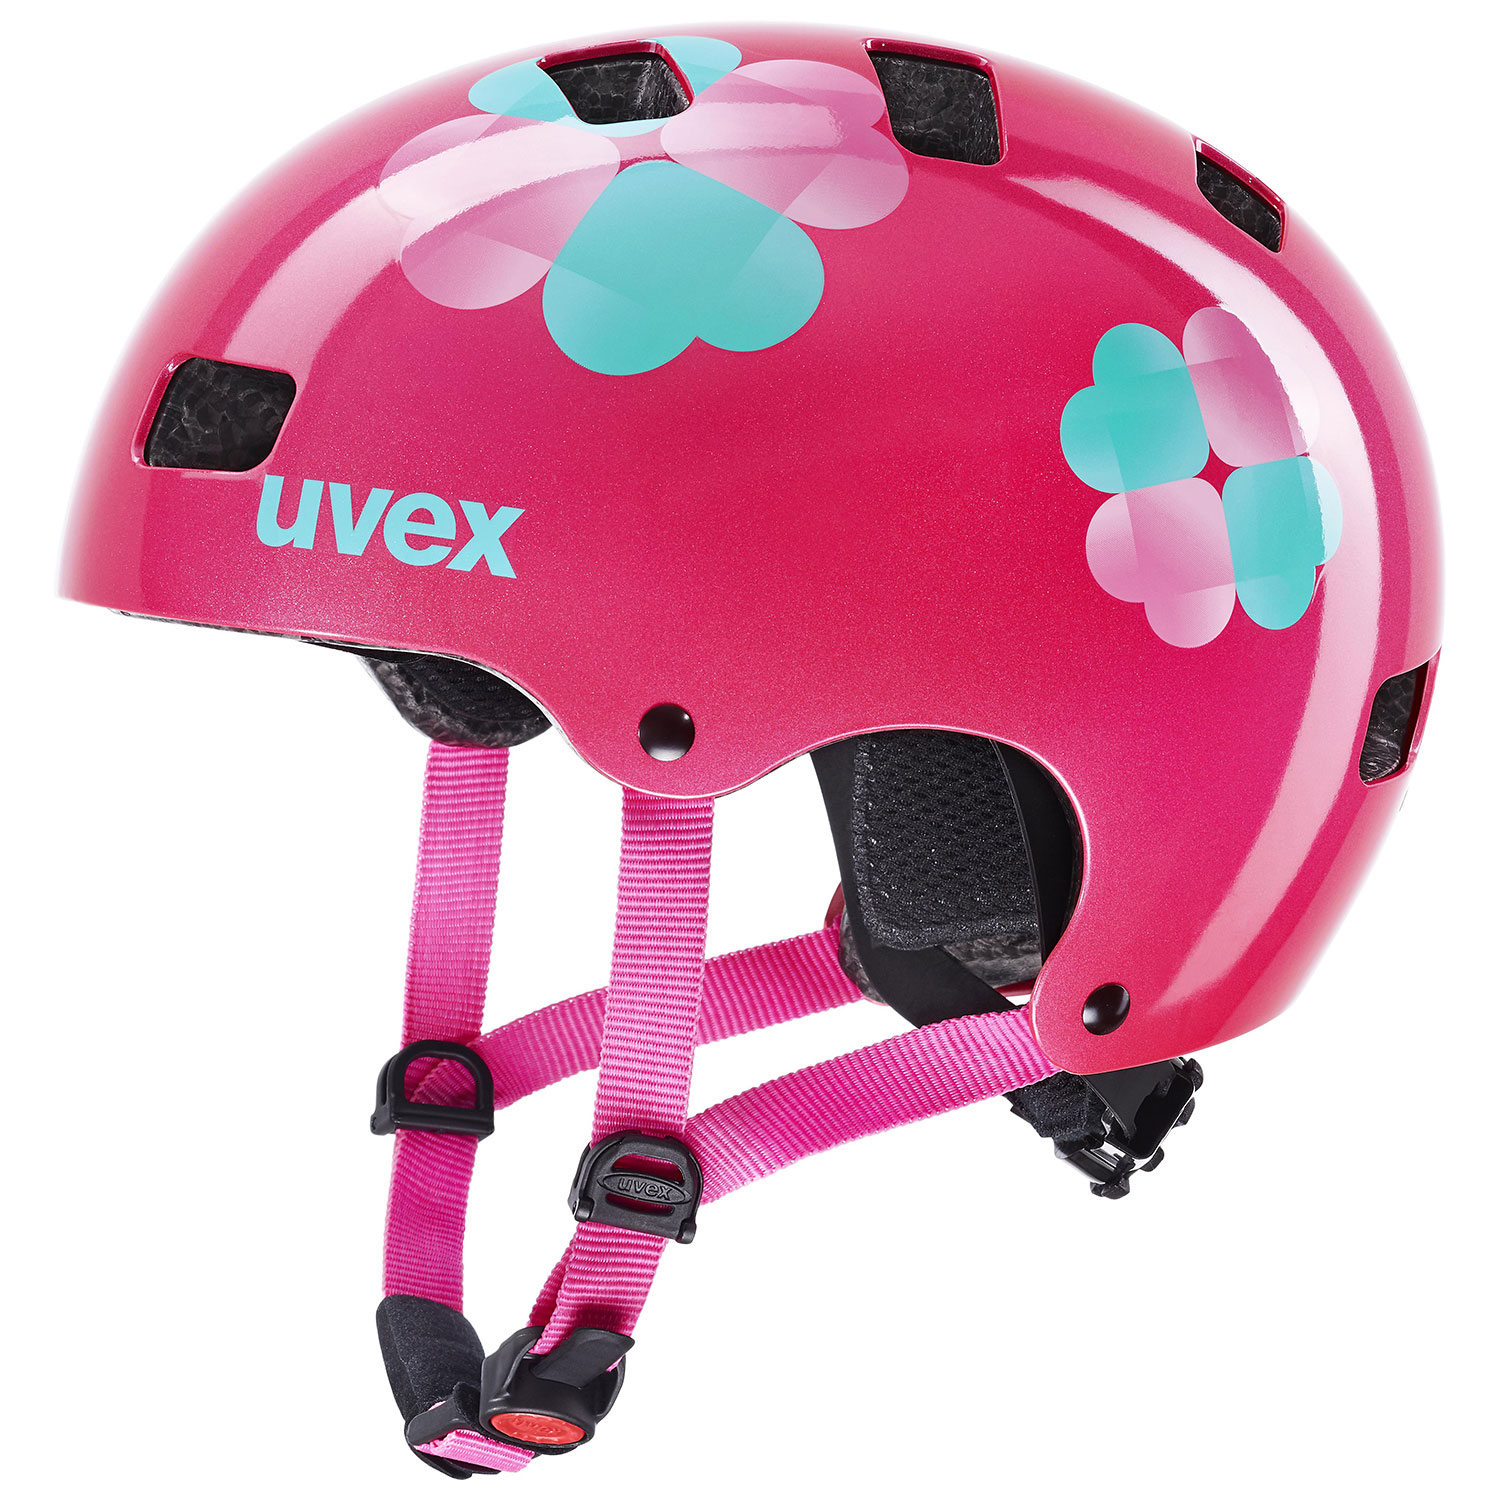 2021 UVEX HELMA KID 3, PINK FLOWER 55-58